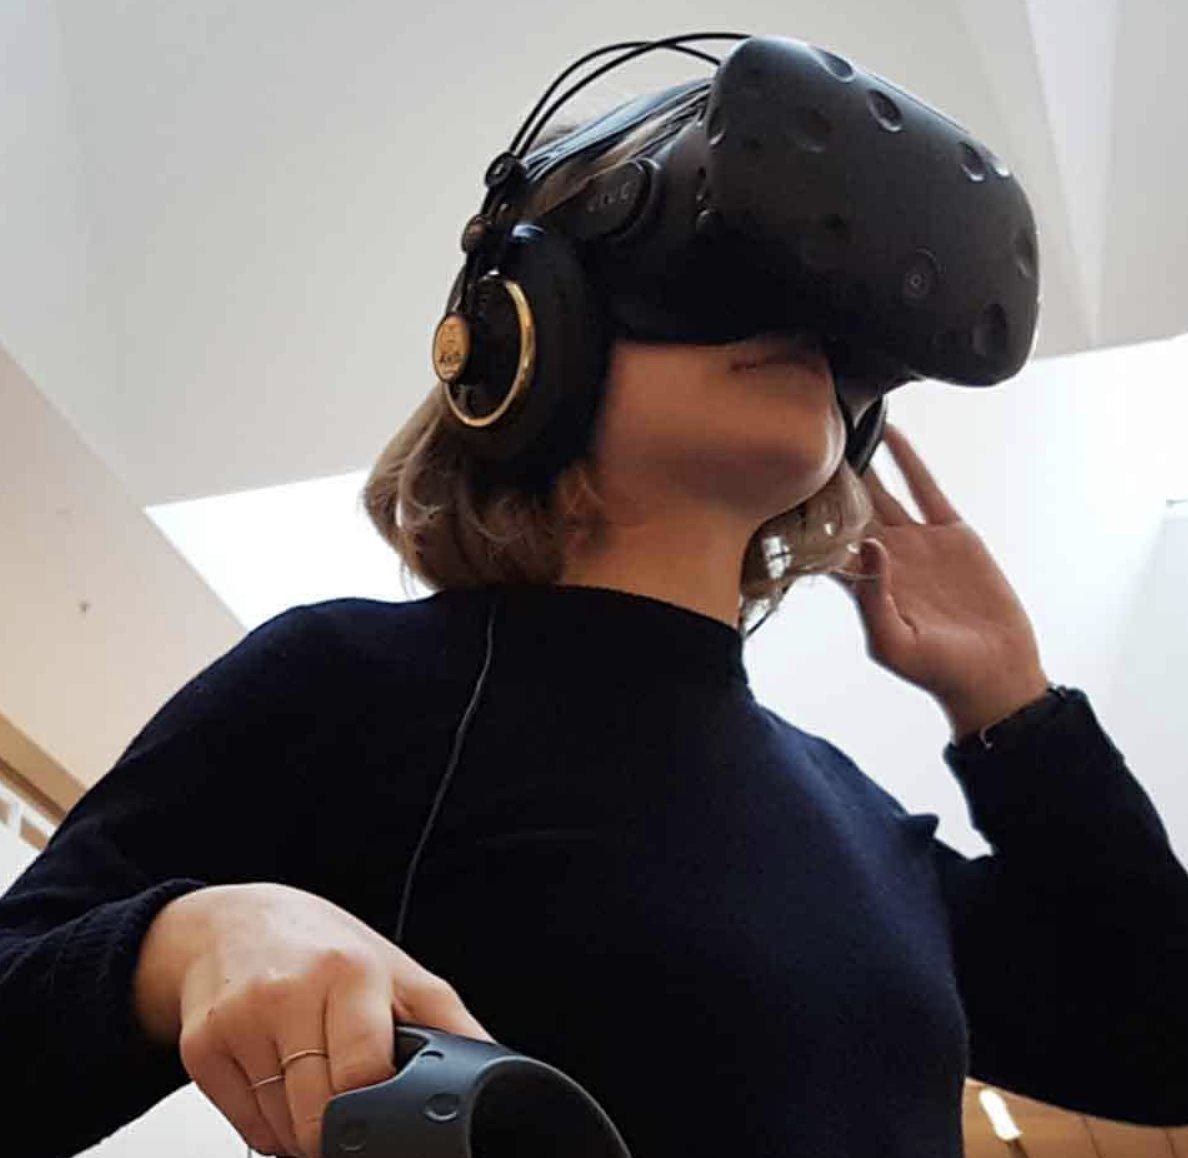 Join us and @HLArchitects on Nov. 31. for an afternoon with:VIRTUAL SOUNDSCAPES AND IMMERSIVE AUDIO - NEW TECH TO ENGAGE THE USERGet insights from a wide range of fields: architecture, gaming, HiFi audio, VR, and simulation.Free of charge:https://t.co/EuVx2qMwPD